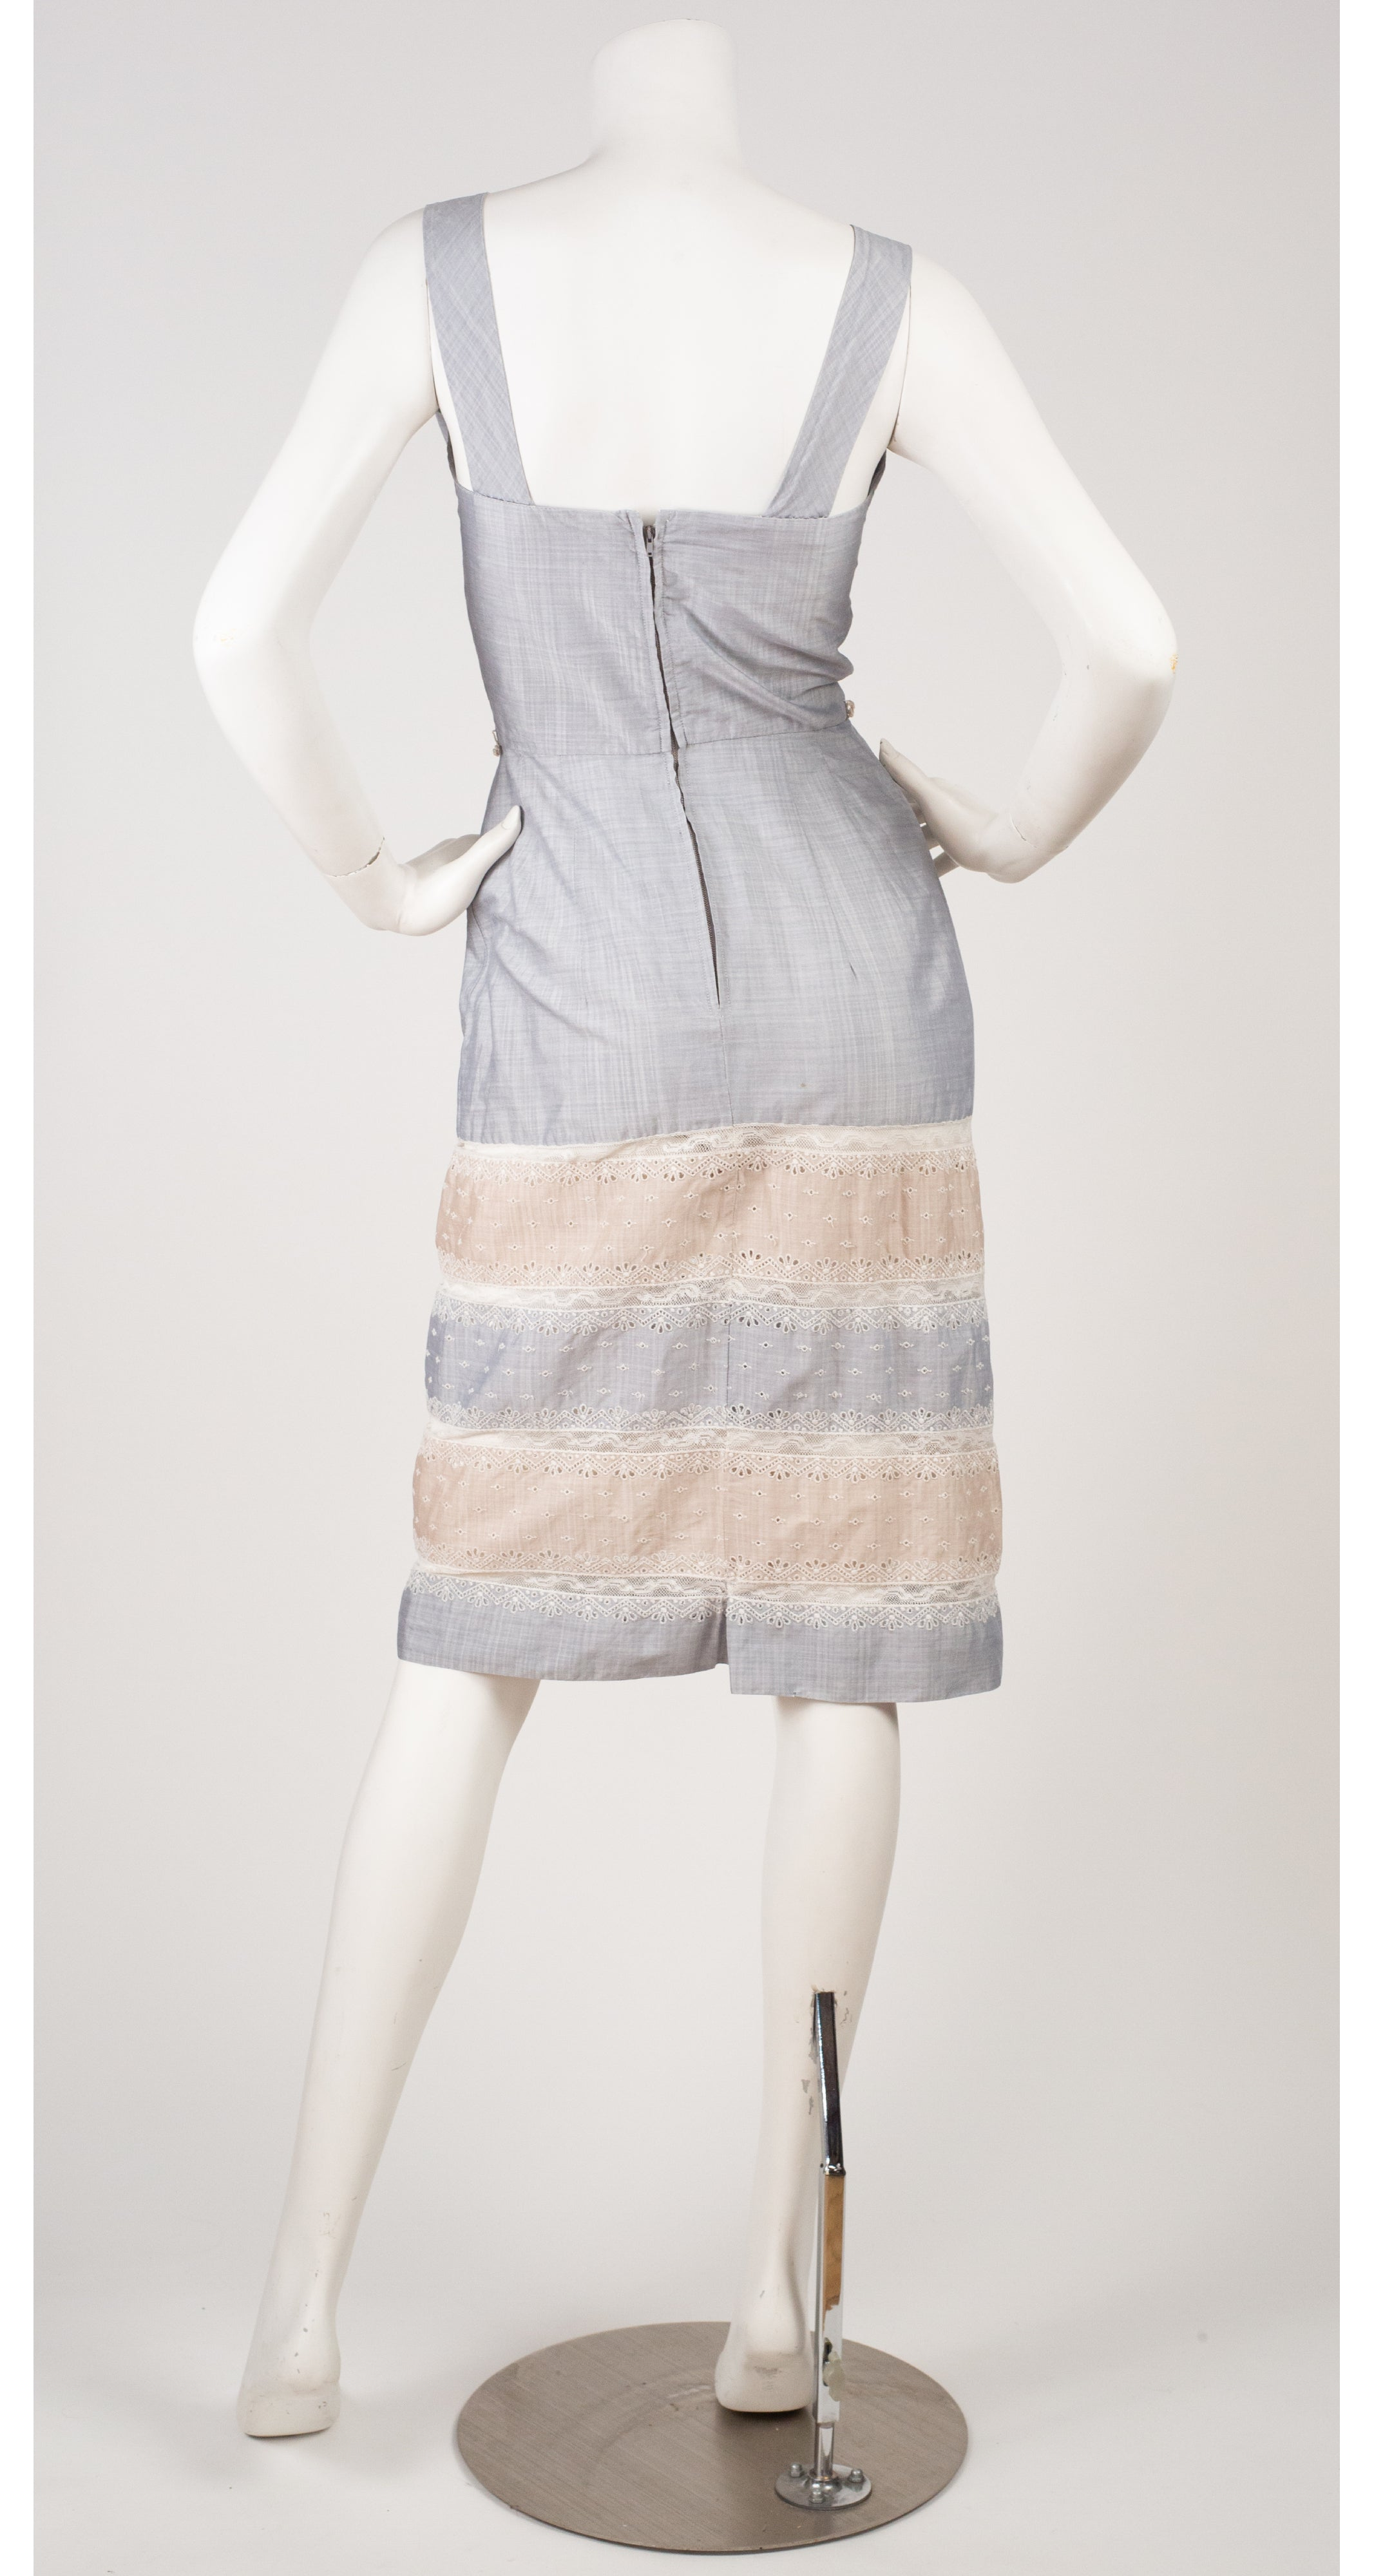 1950s Lace Inset Cotton Summer Dress & Shrug Set